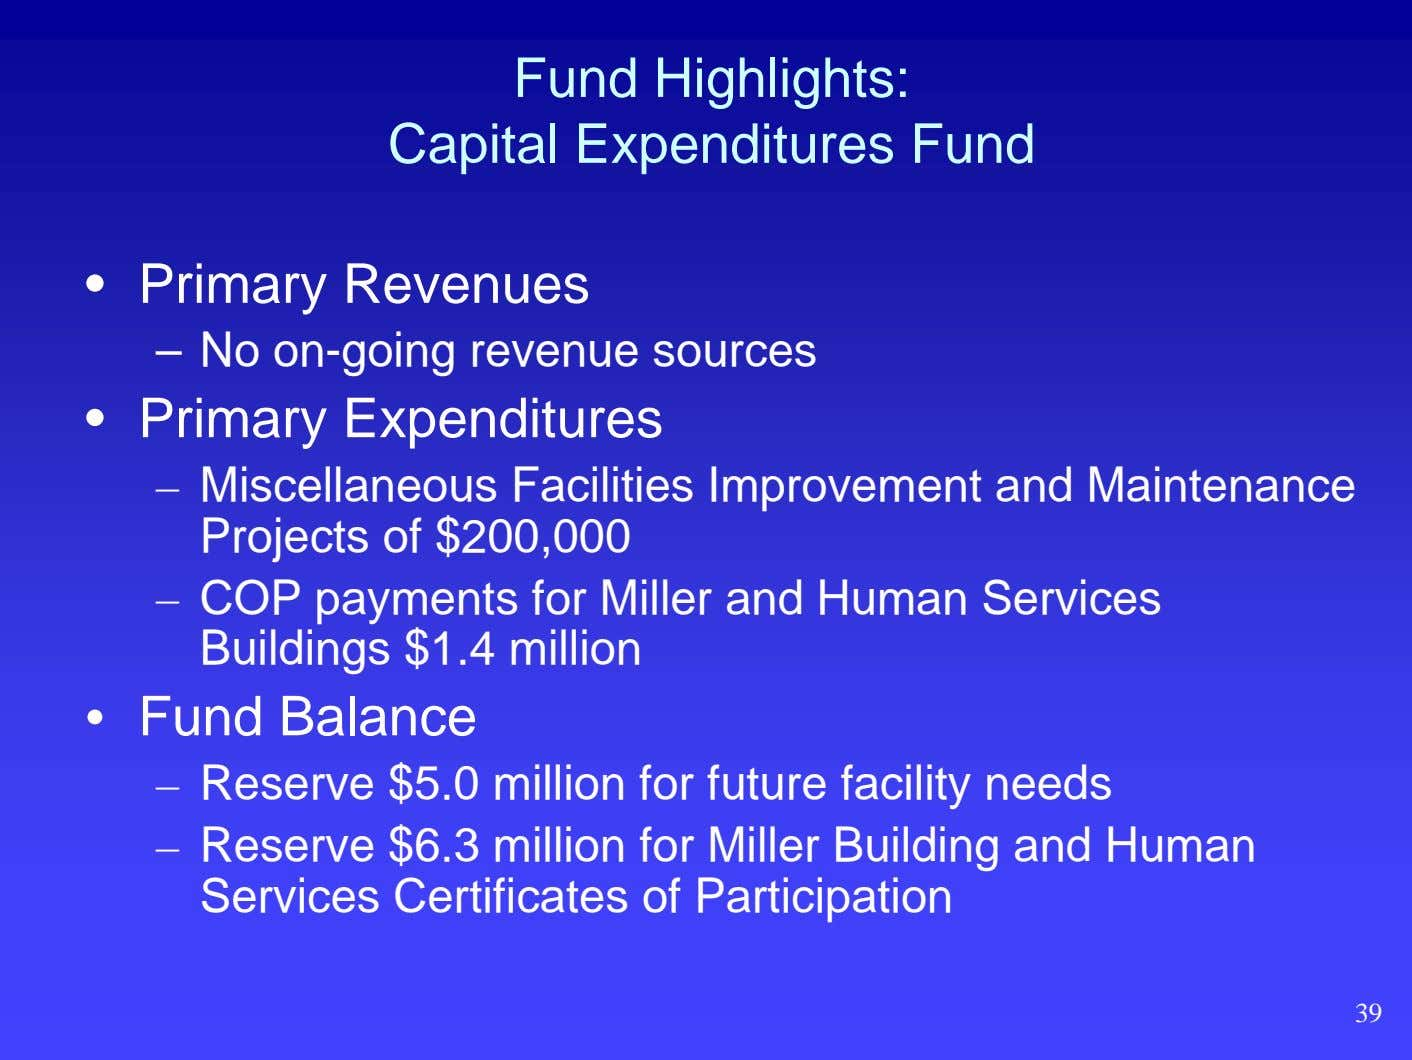 Fund Highlights: Capital Expenditures Fund • Primary Revenues – No on-going revenue sources • Primary